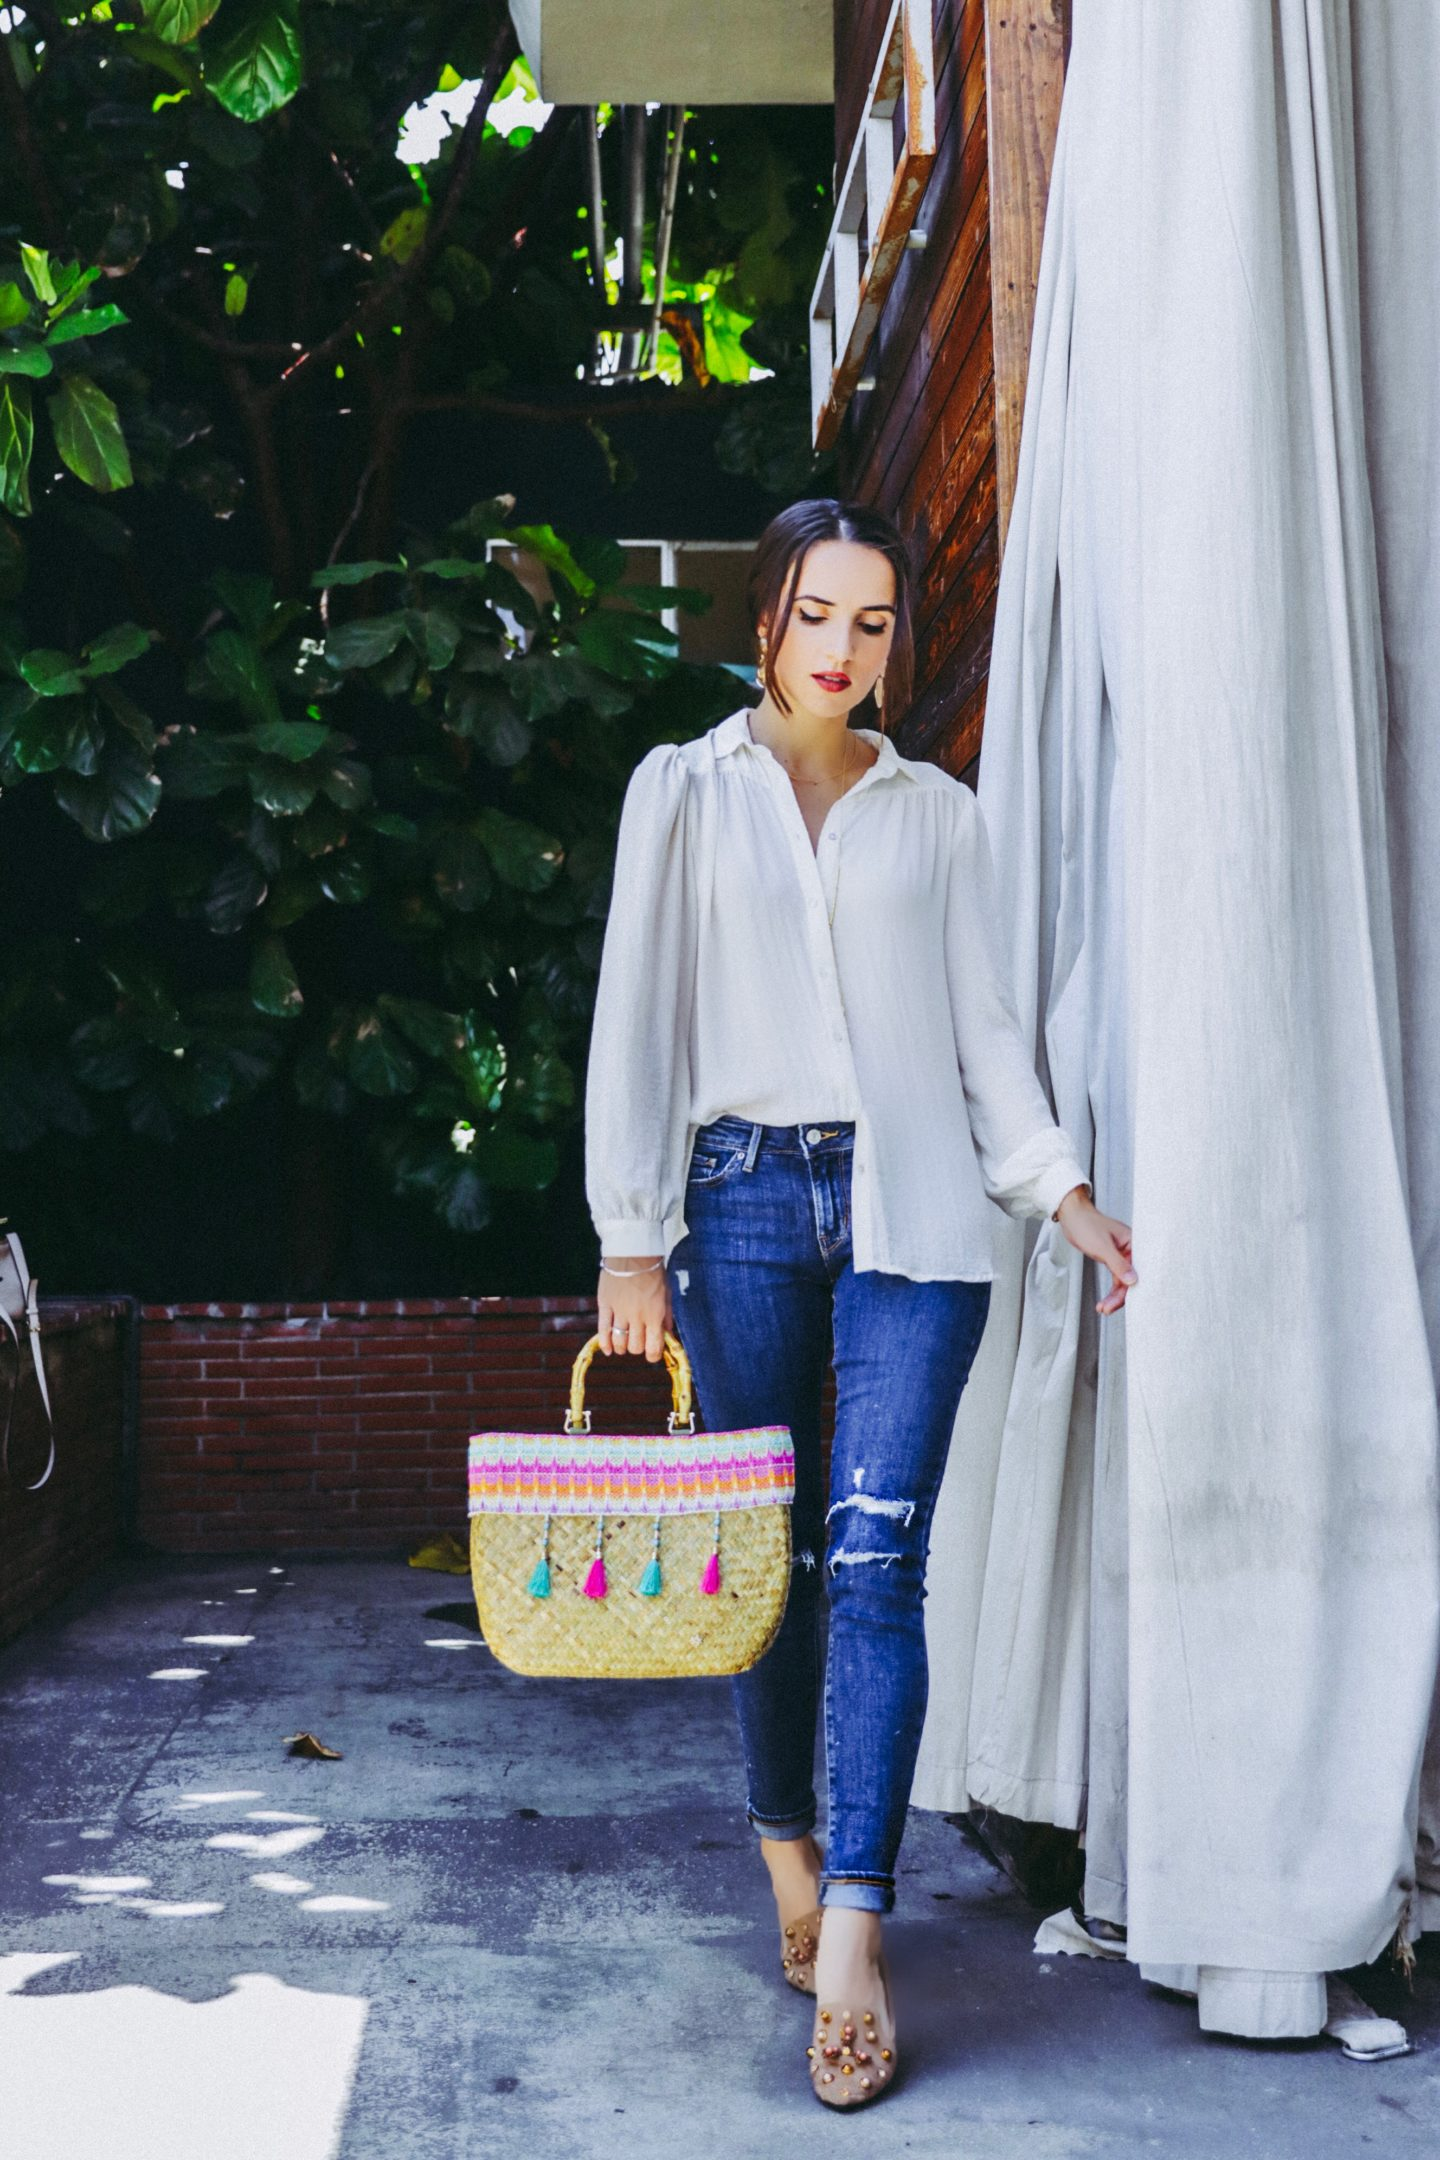 Denim Outfits For Day and Night - Levis Ripped Skinny Jeans Day Outfit - thecasualfree.com